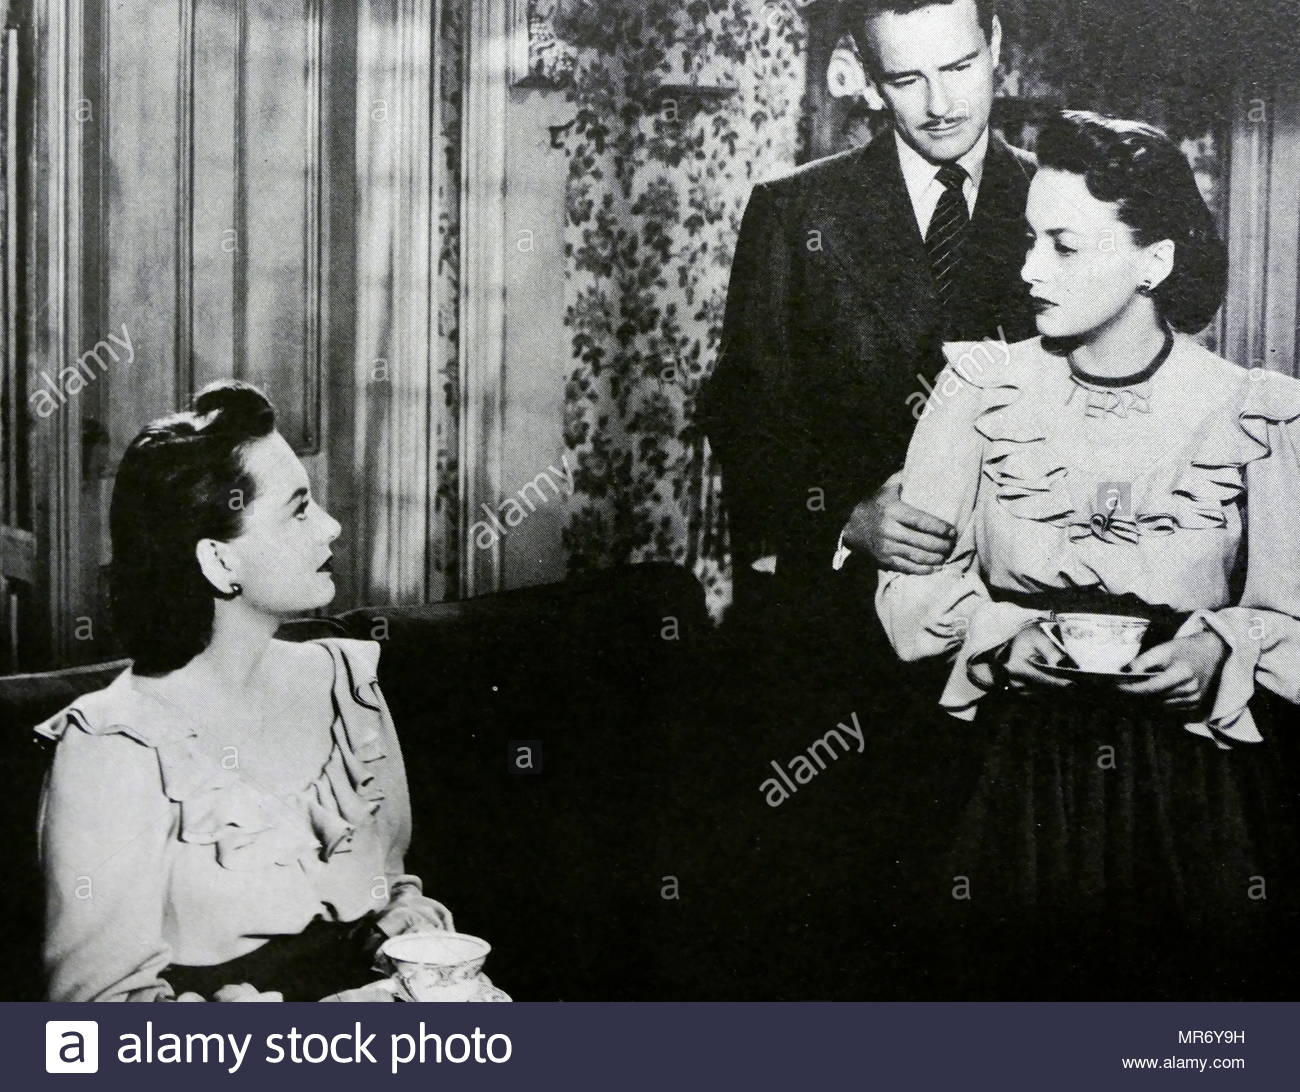 The Dark Mirror is a 1946 American film noir psychological thriller film directed by Robert Siodmak starring Olivia de Havilland as twins and Lew Ayres as their psychiatrist. - Stock Image